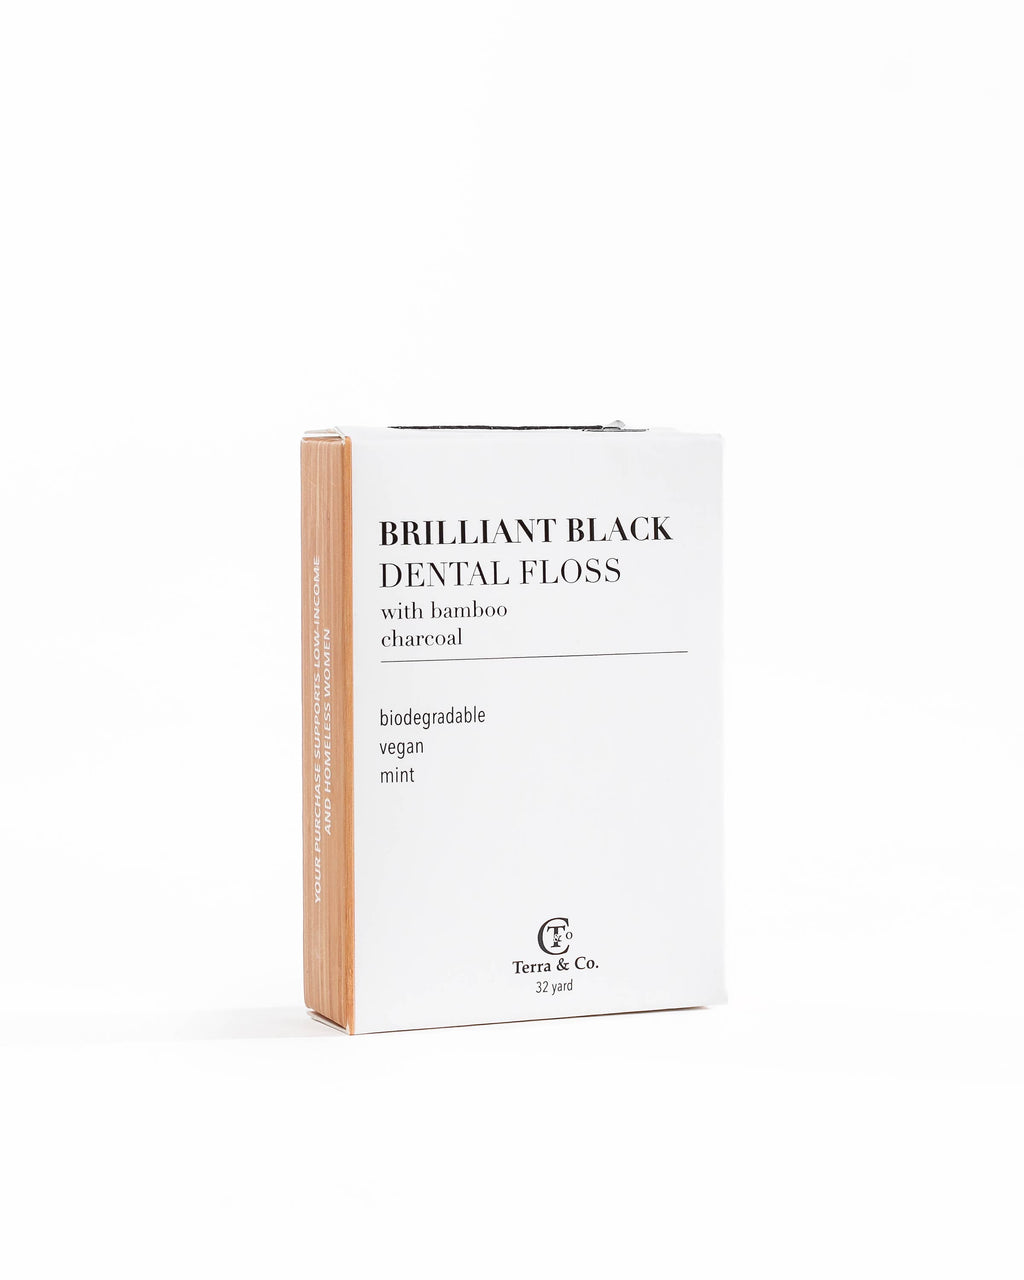 Brilliant Black Dental Floss